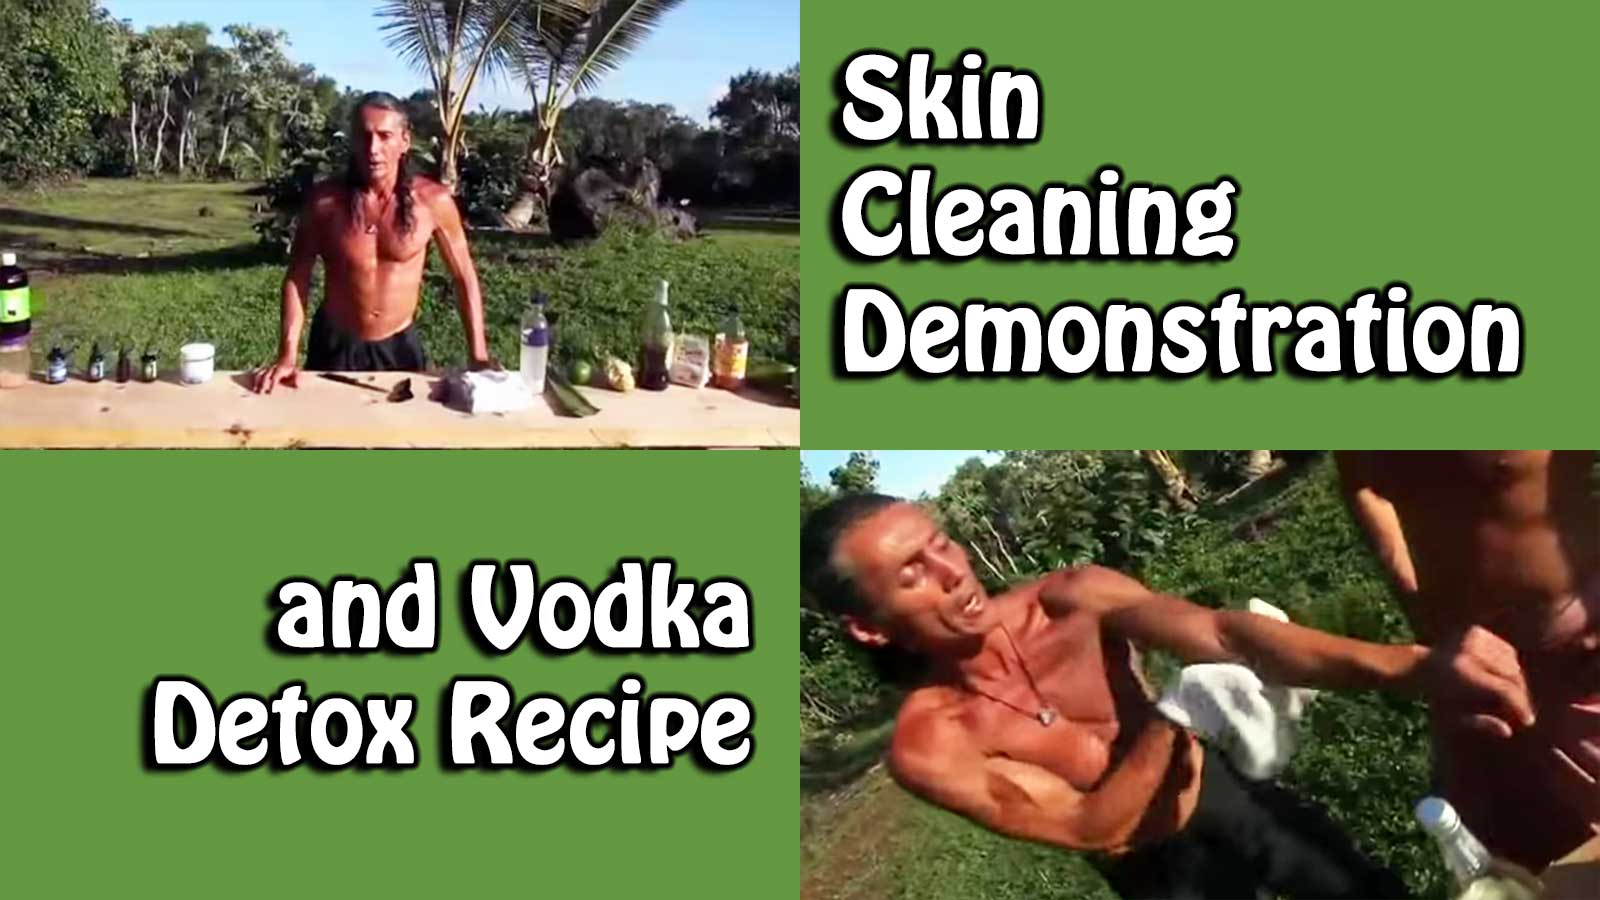 Skin Cleaning Demonstration and Vodka Detox Recipe